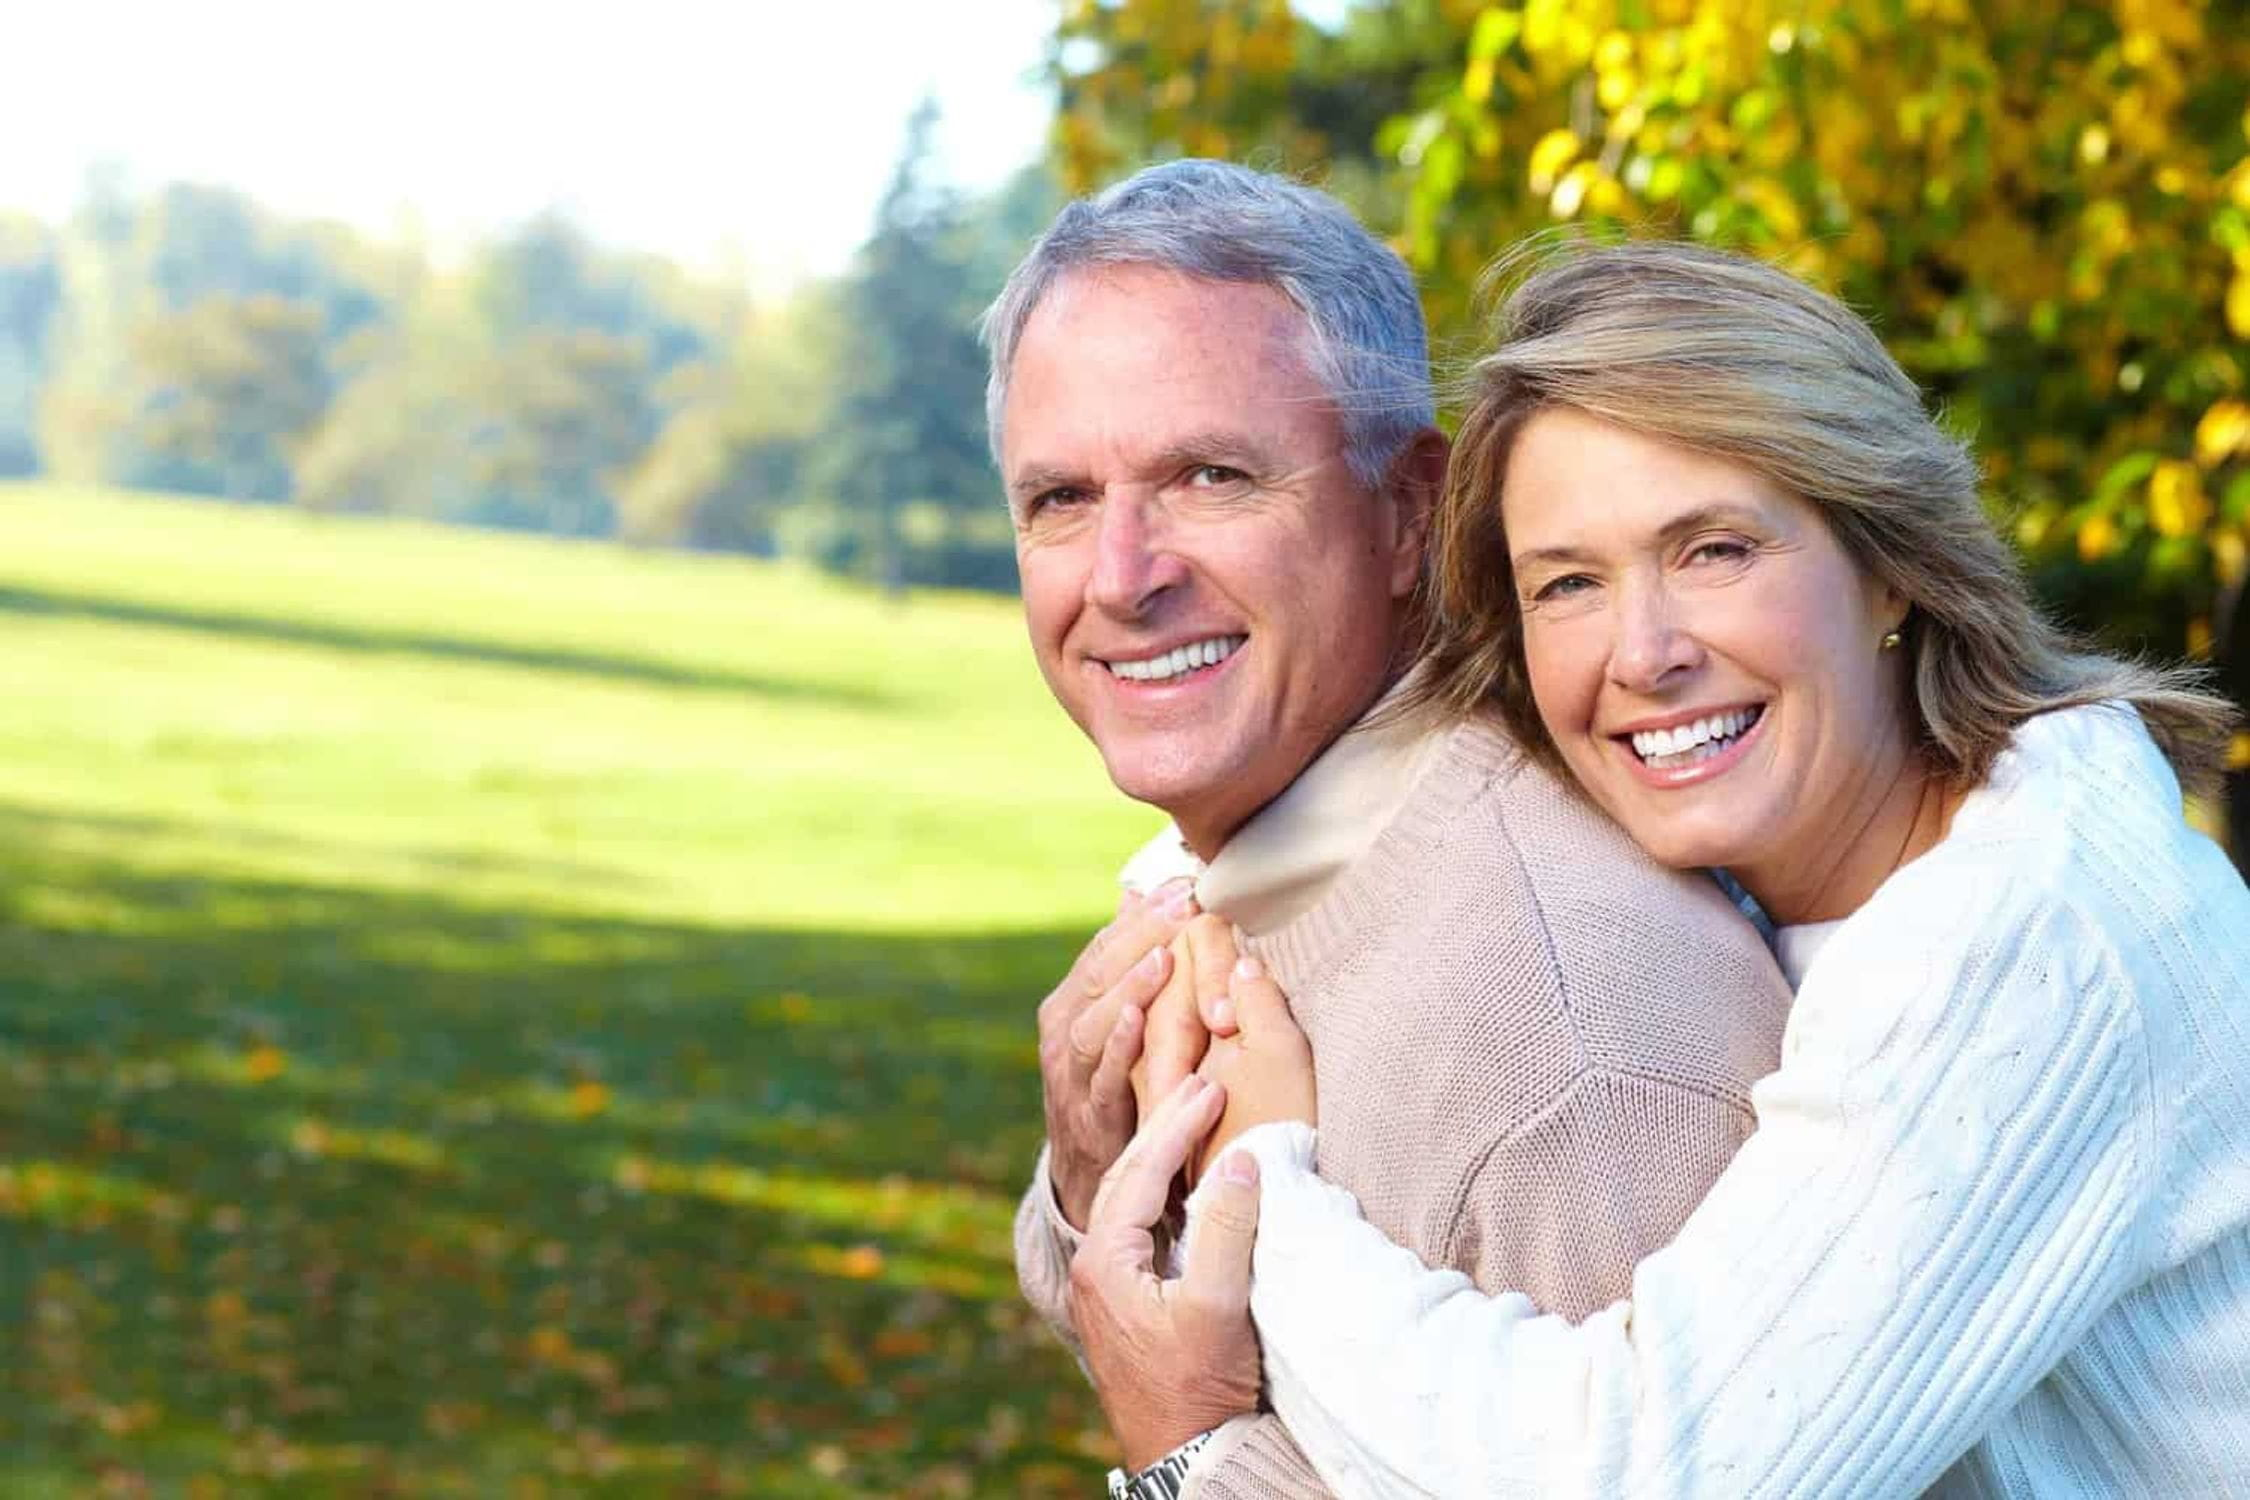 Older couple embracing in a park.